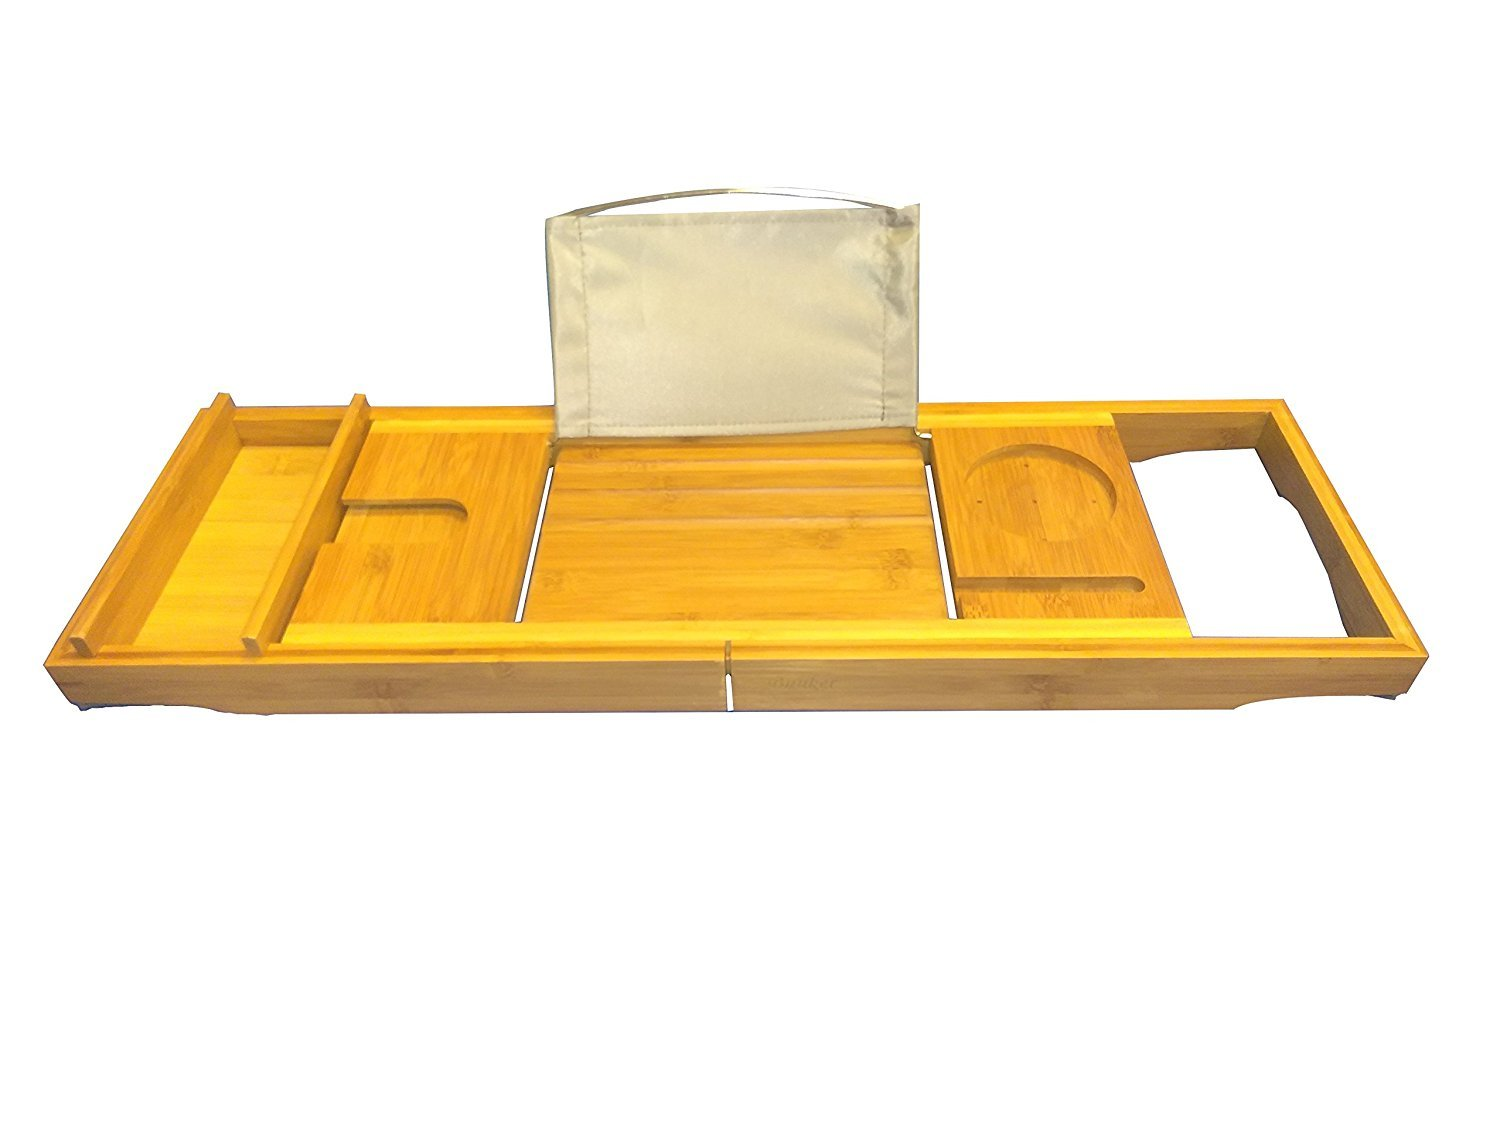 Luxurious 100% Bamboo Bathtub Caddy | Sturdy extendable sides | Bath Tray | Relax and enjoy with 2 built in drink holders and adjustable book rest | Smart phone Cutout | Extra Side Tray | Perfect Gift BUNKER001